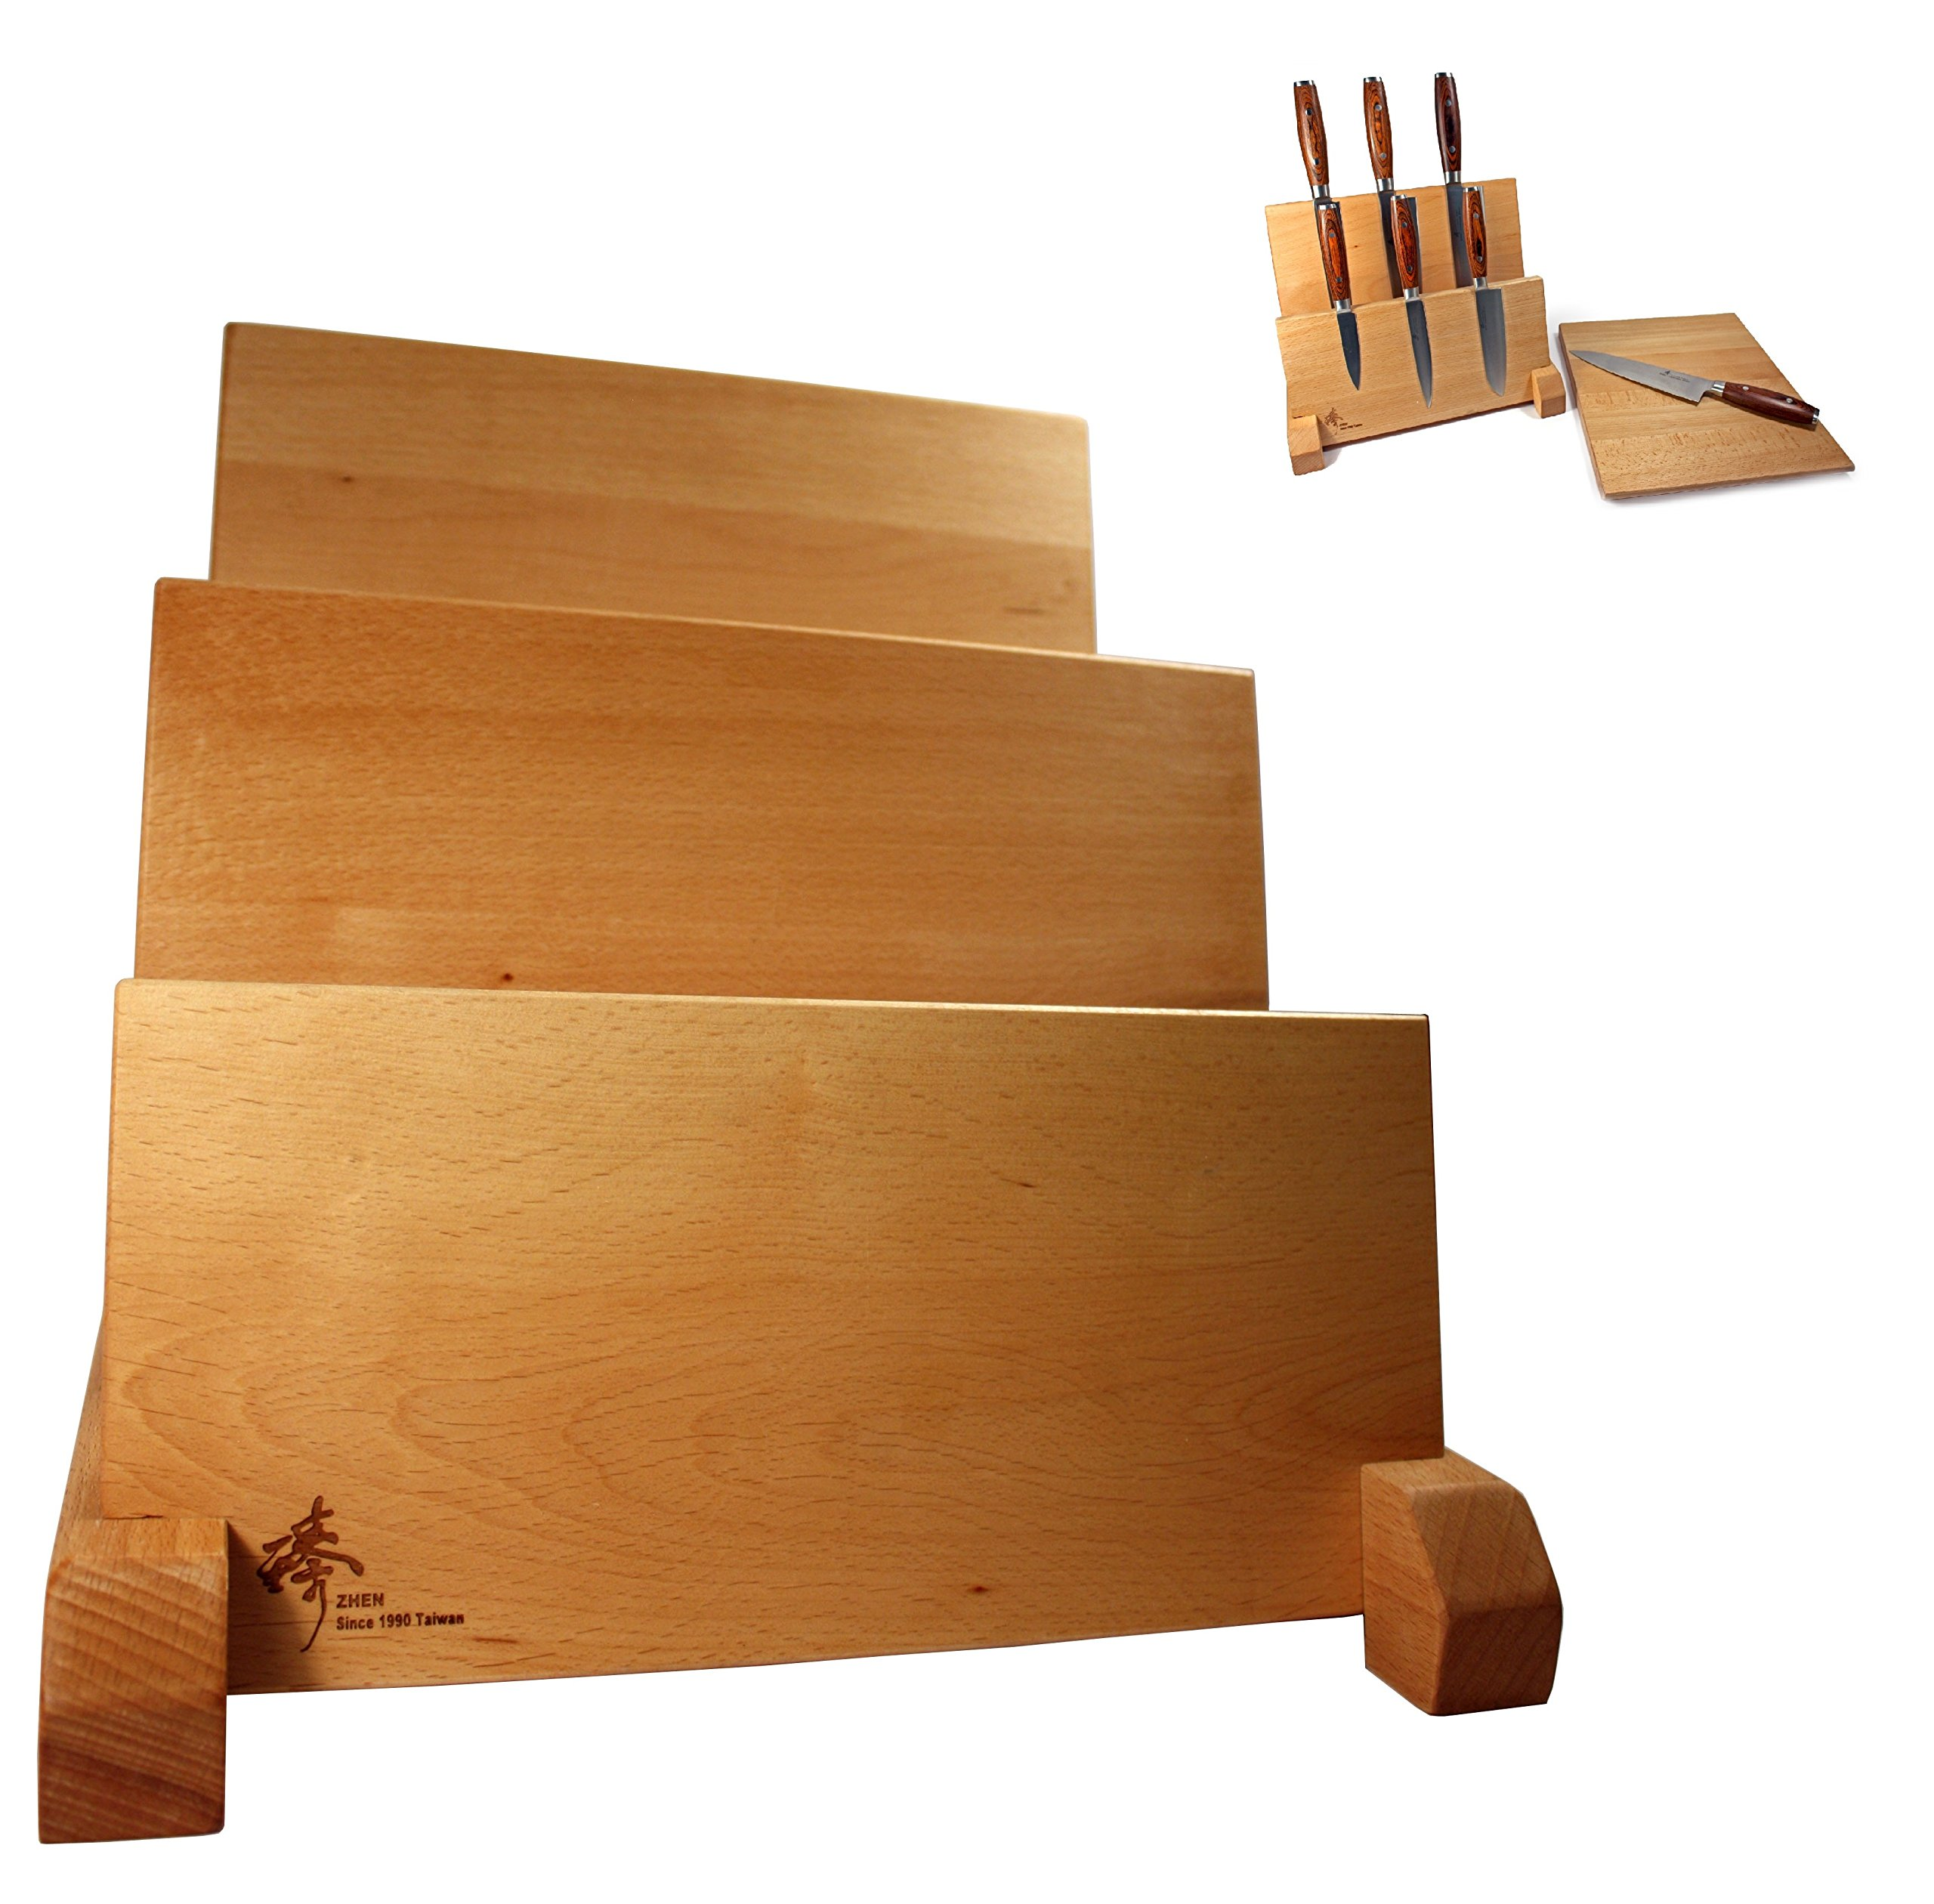 ZHEN Magnetic Wood Knife Block with Solid Beech Wood Natural Lacquer Finish and 2 Rows with Cutting Board, Light Brown